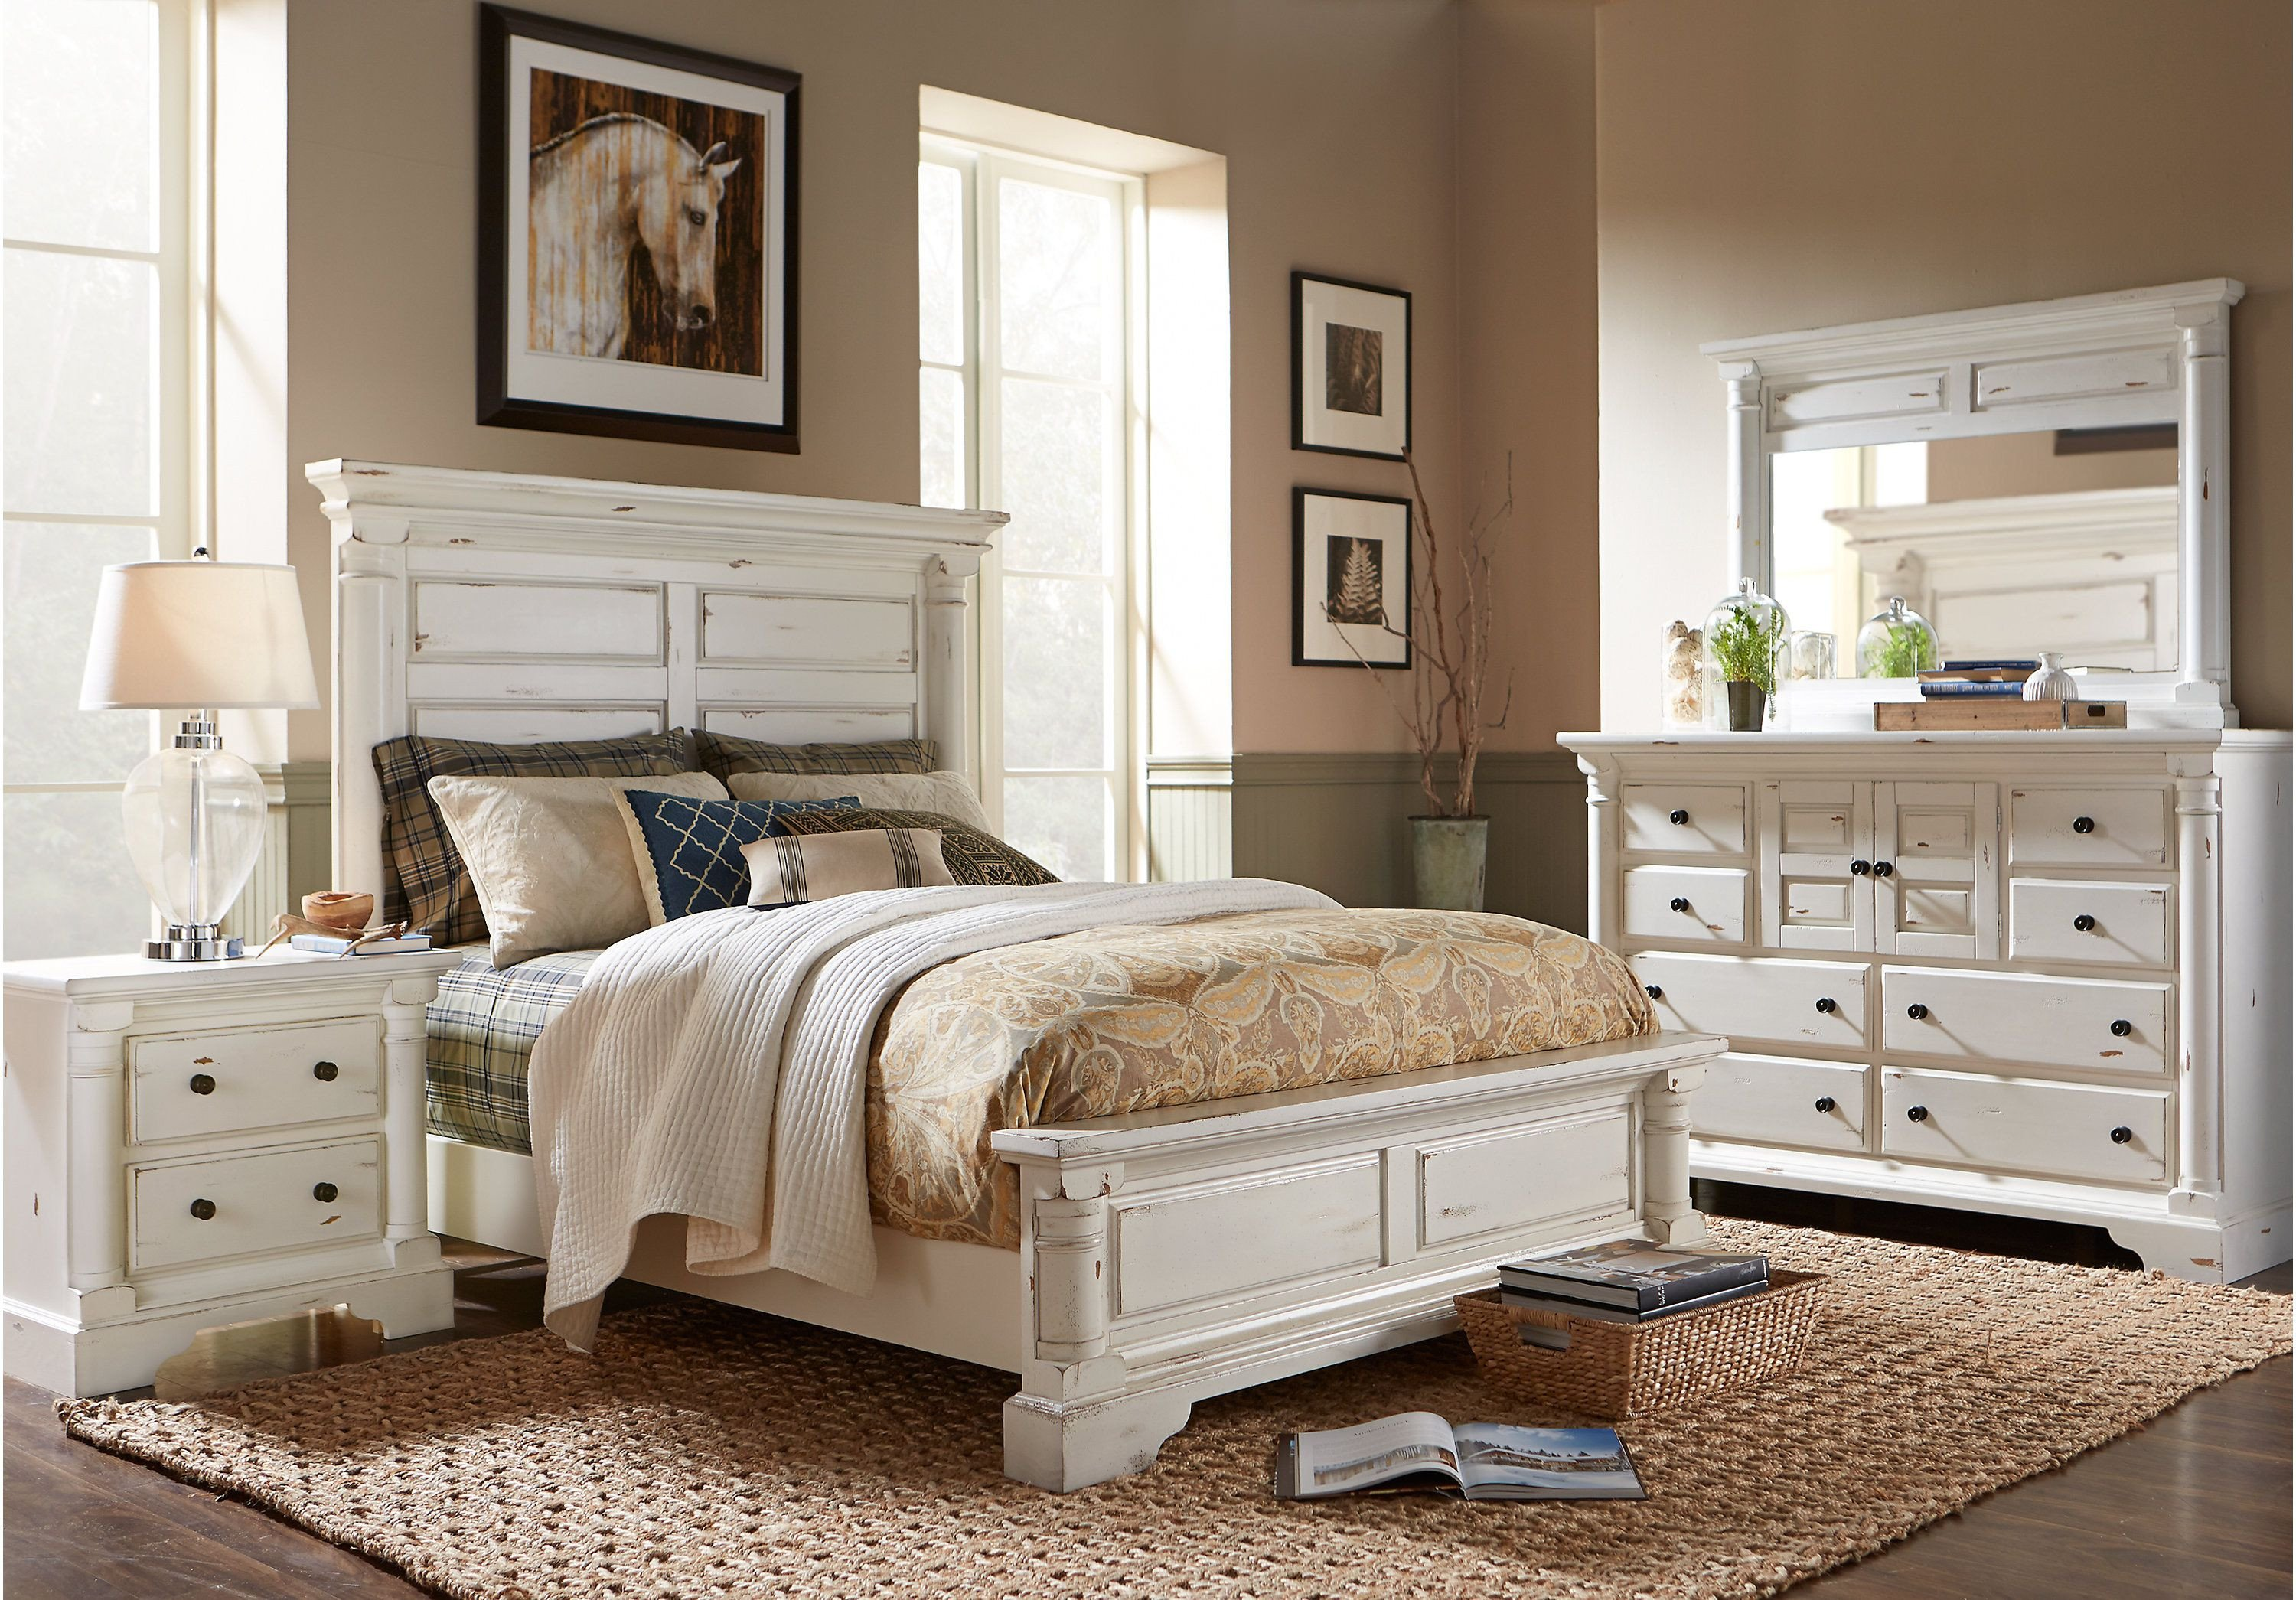 Ikea White Bedroom Furniture Beautiful Claymore Park F White 8 Pc King Panel Bedroom